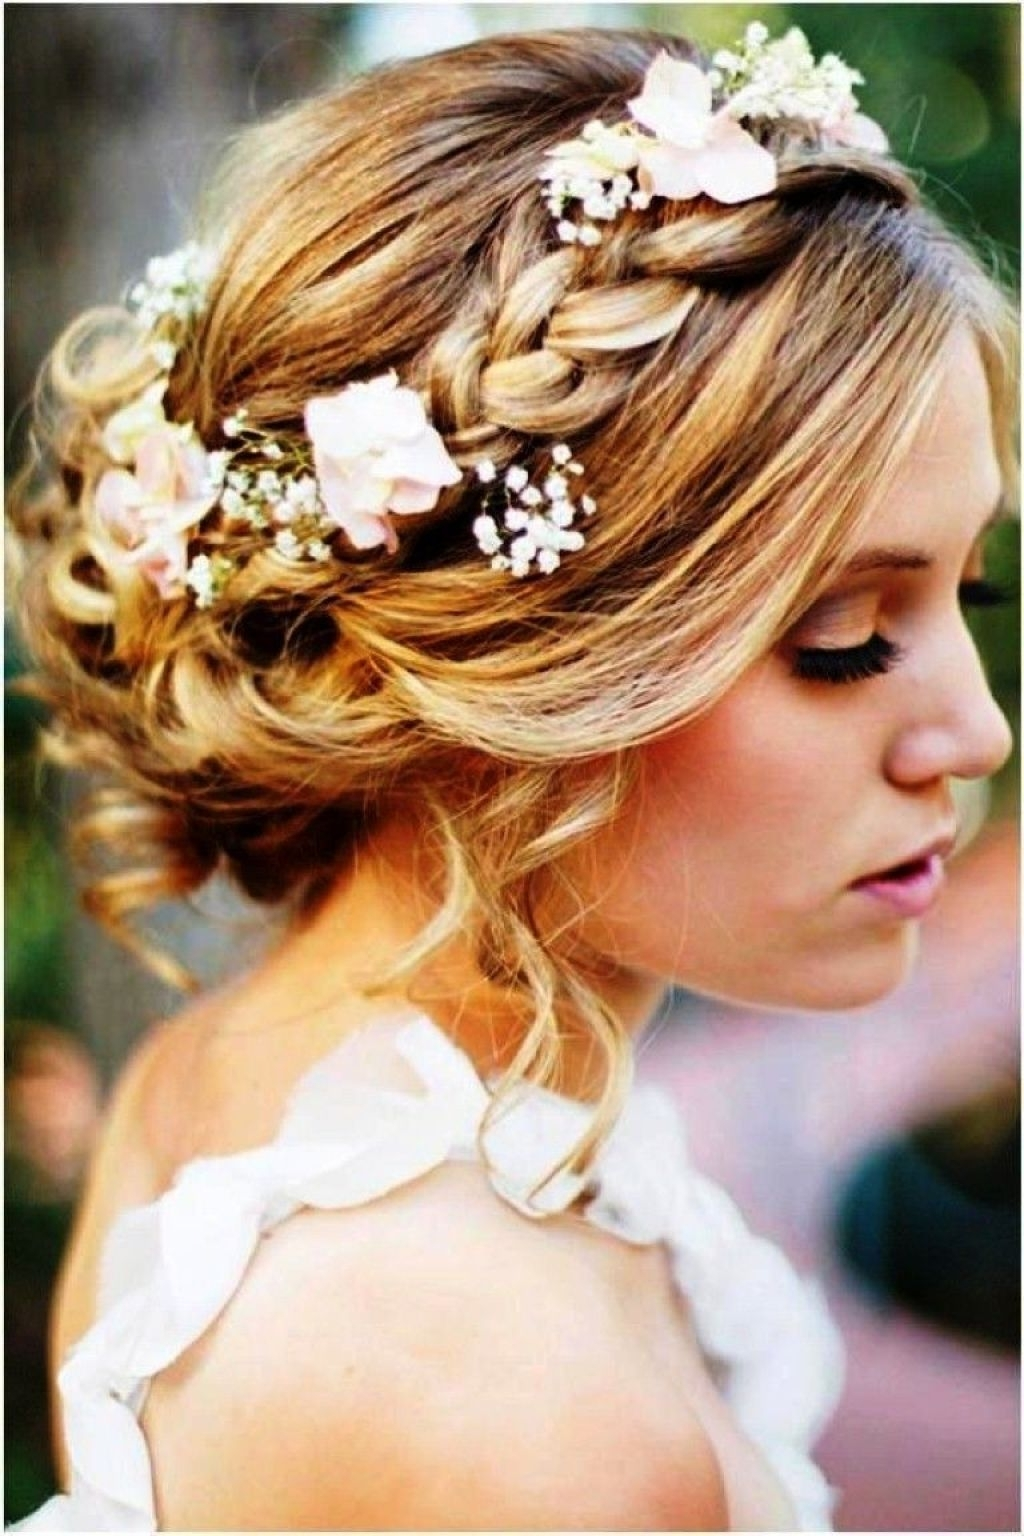 Latest Wedding Hairstyles For Medium Hair Regarding √ 24+ Best Wedding Hairstyles For Shoulder Length Hair: Mid Length (View 5 of 15)